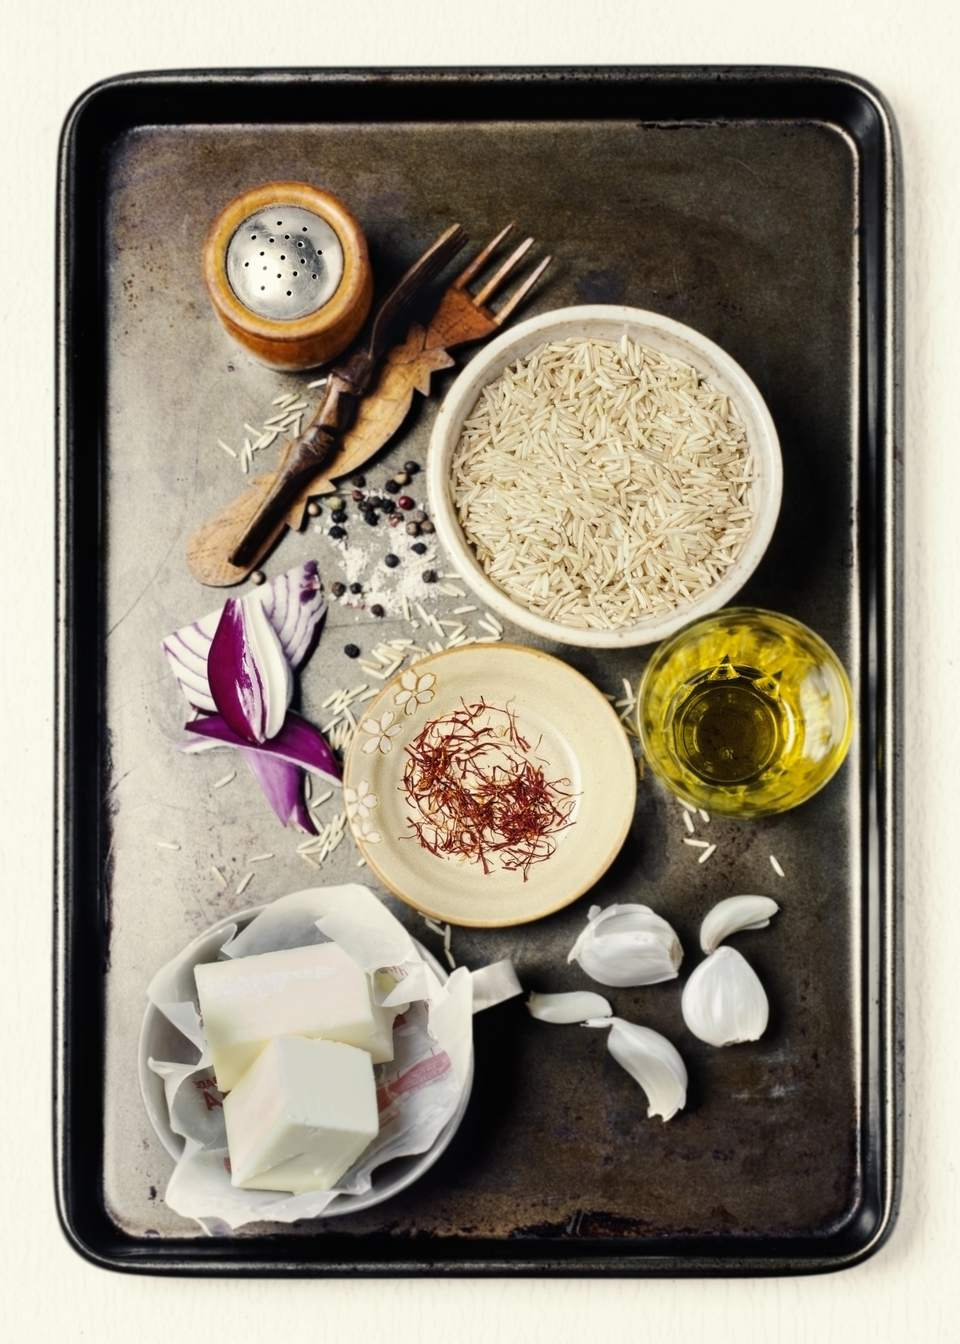 Ingredients for making risotto